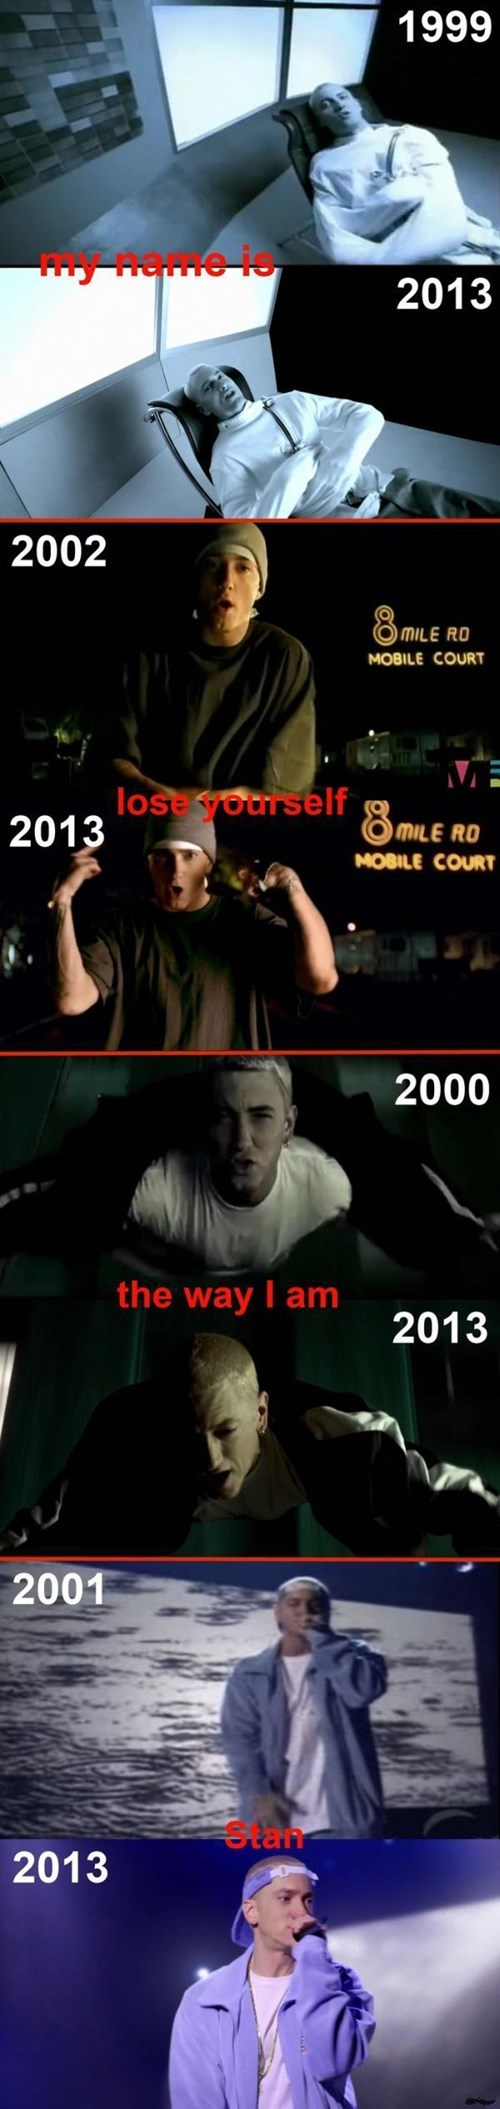 eminem time travel music videos - 7963586304